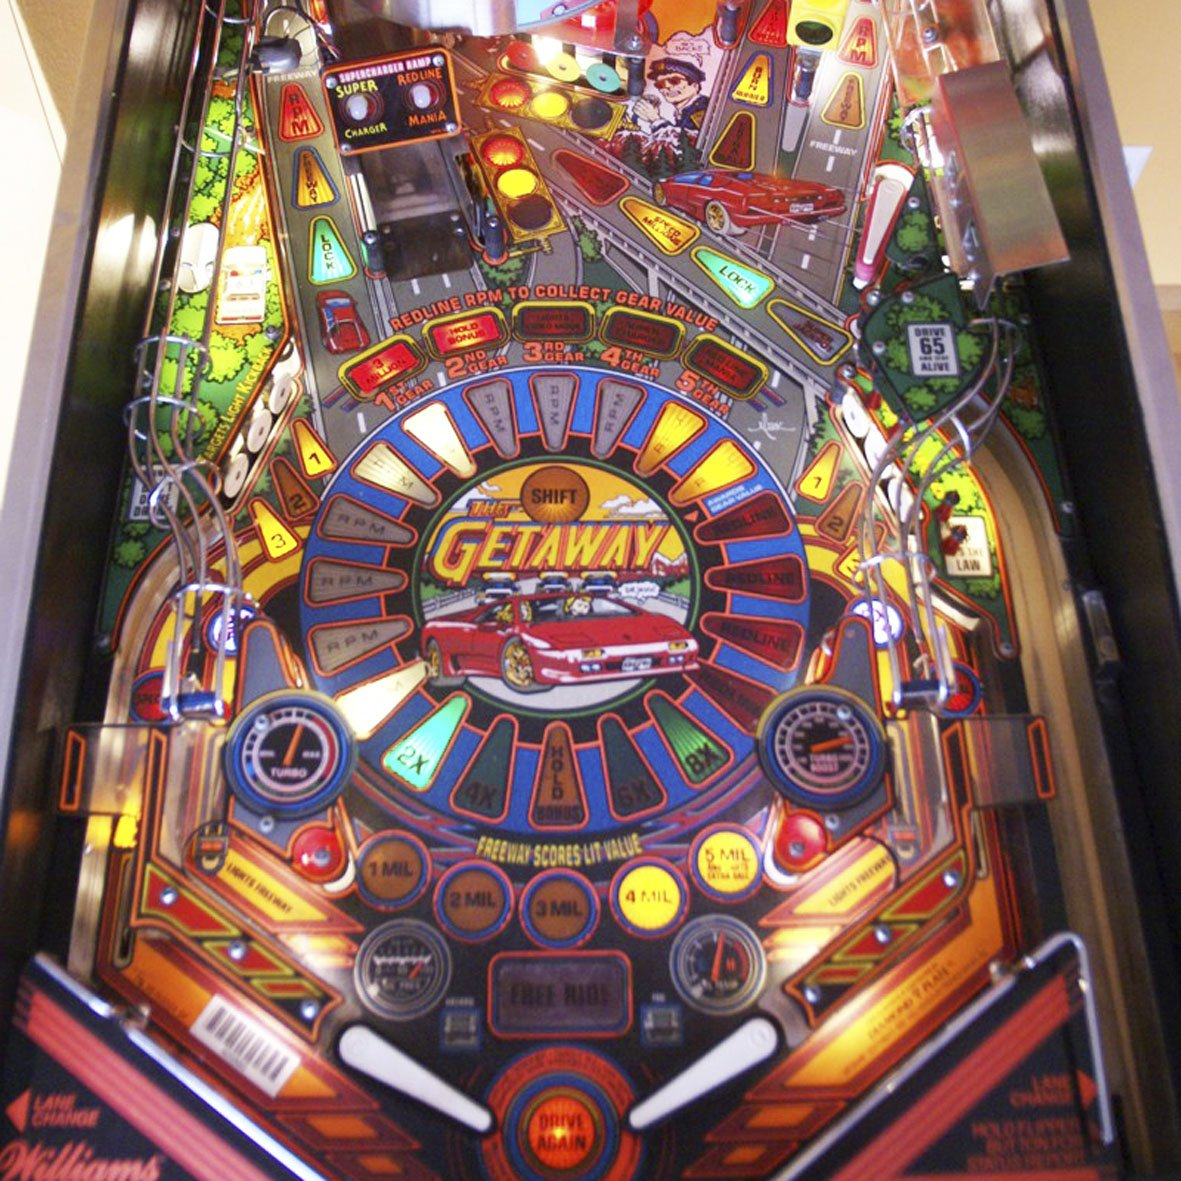 1990's The Getaway: High Speed II  Pinball Machine by Williams